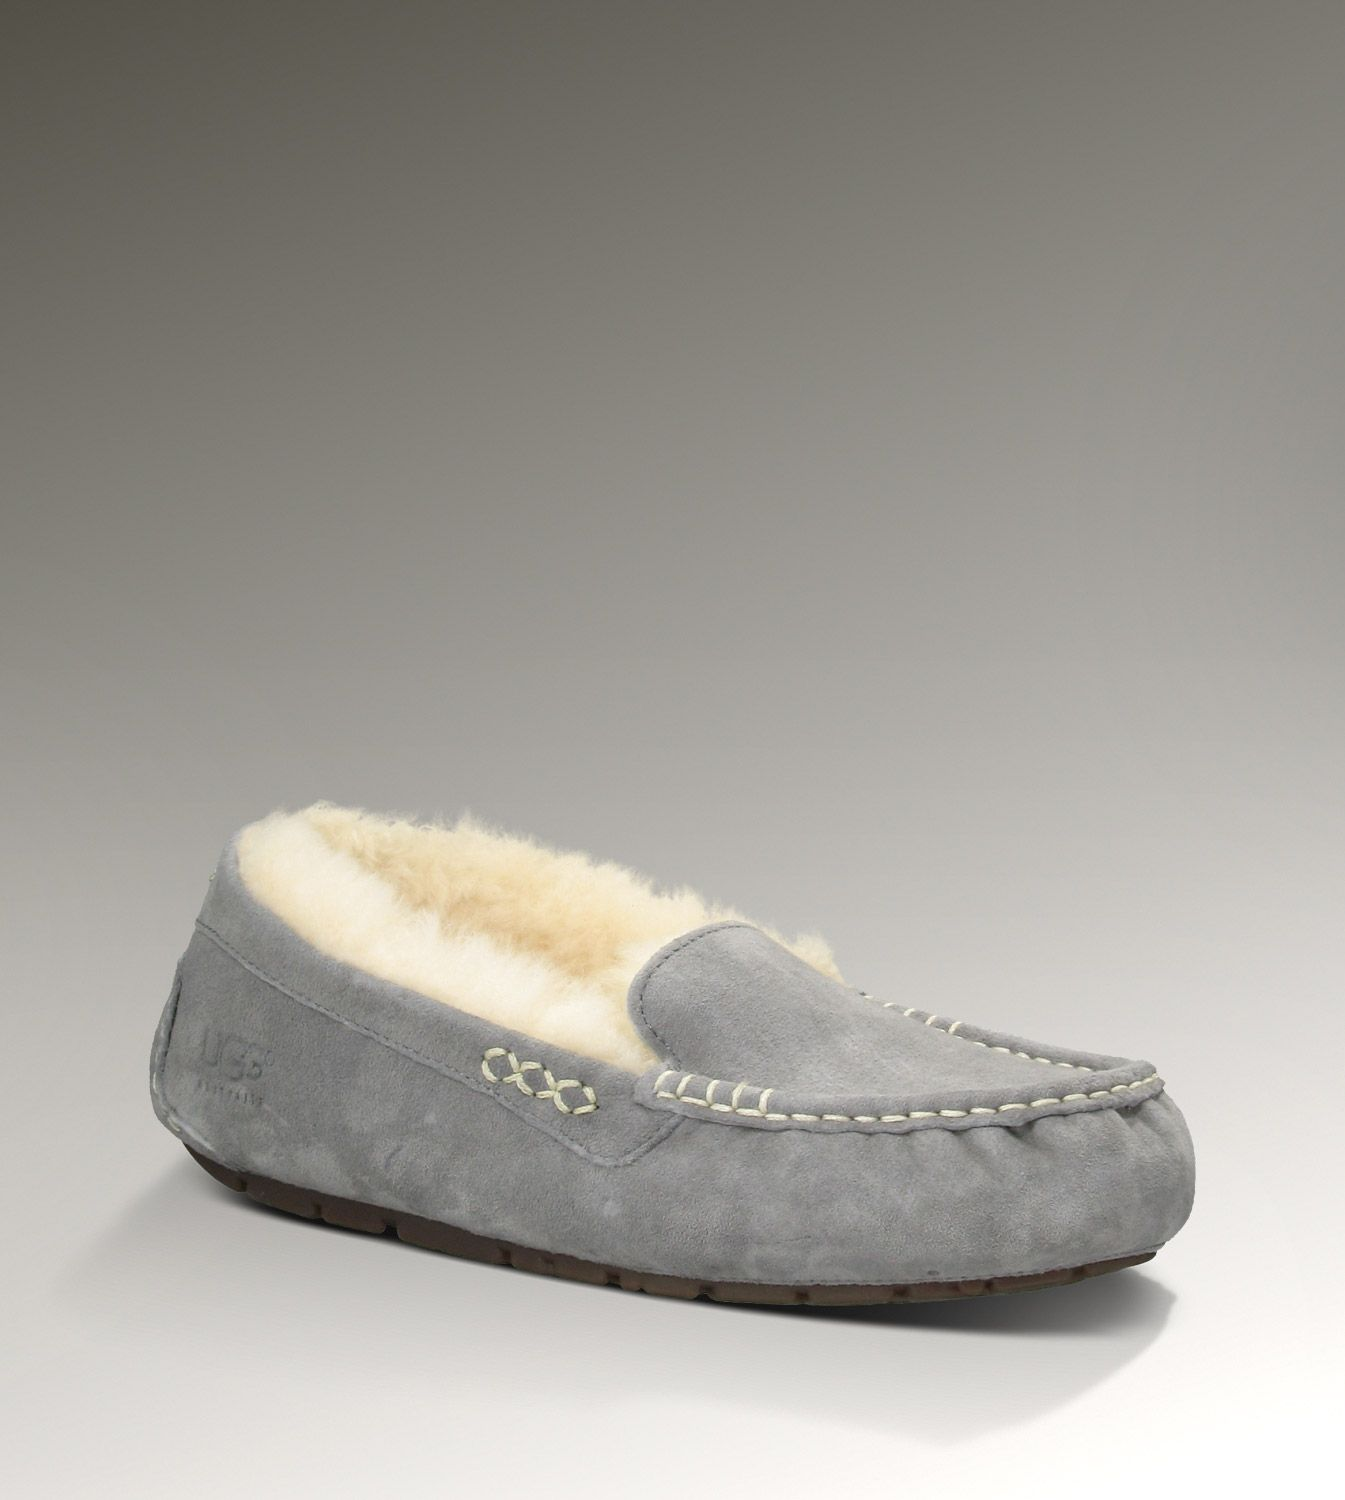 grey ugg slippers